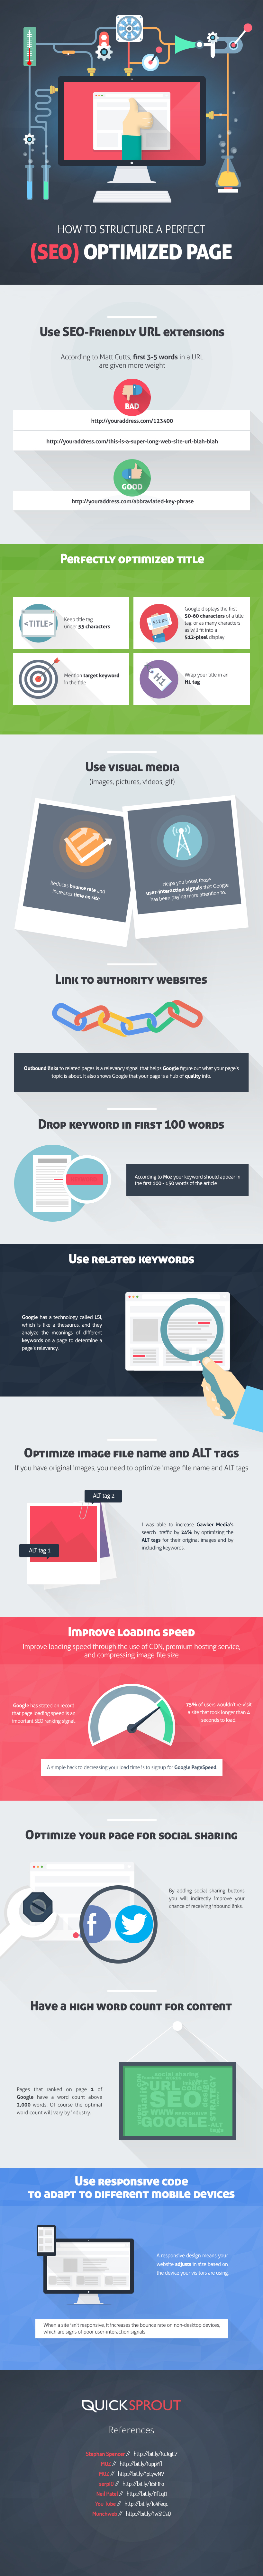 The-Perfect-On-Page-SEO-Checklist-for-2016-Infographic_jpg